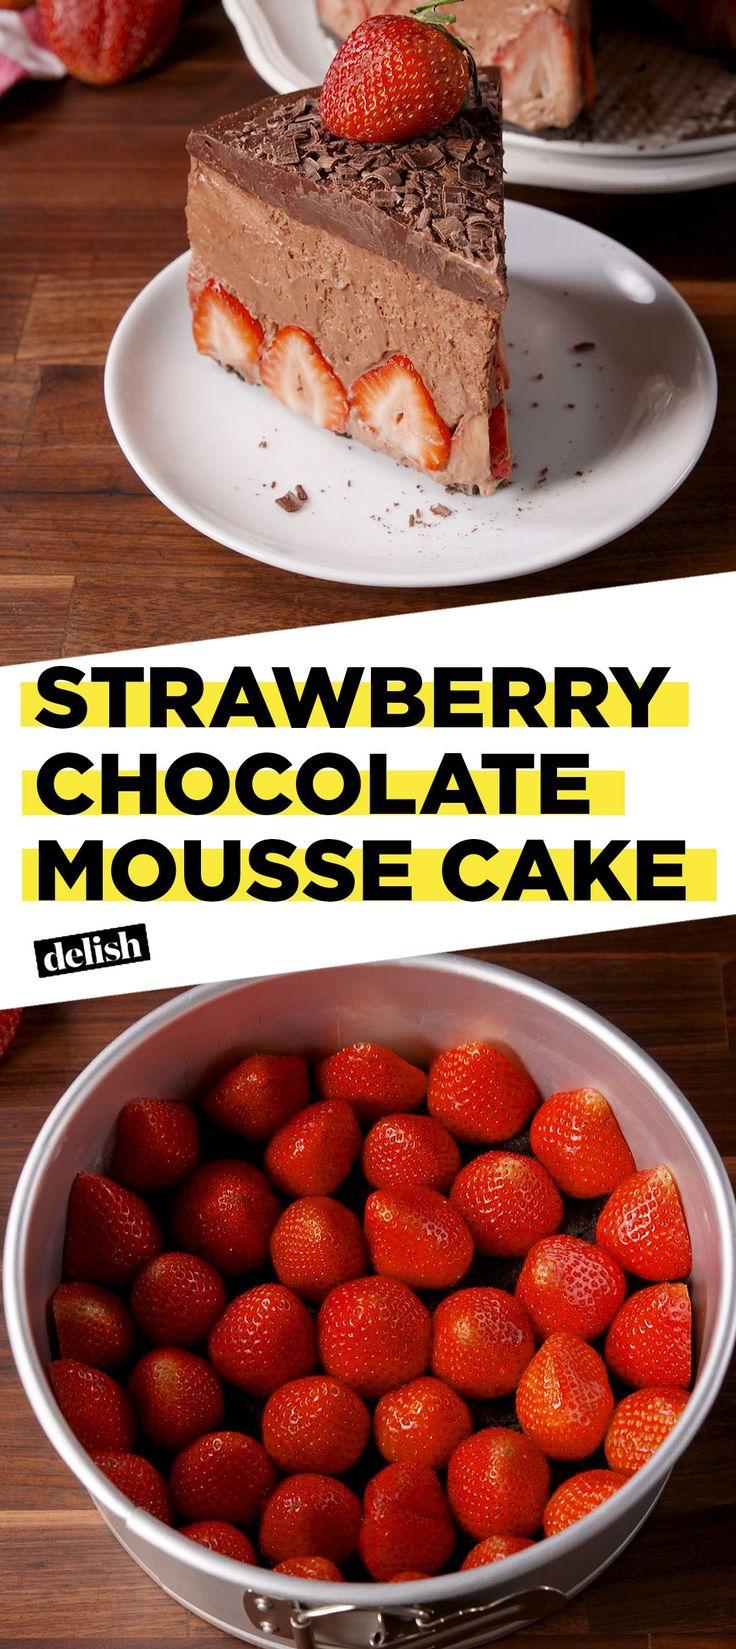 If you love chocolate covered strawberries then this cake is for you. Delish